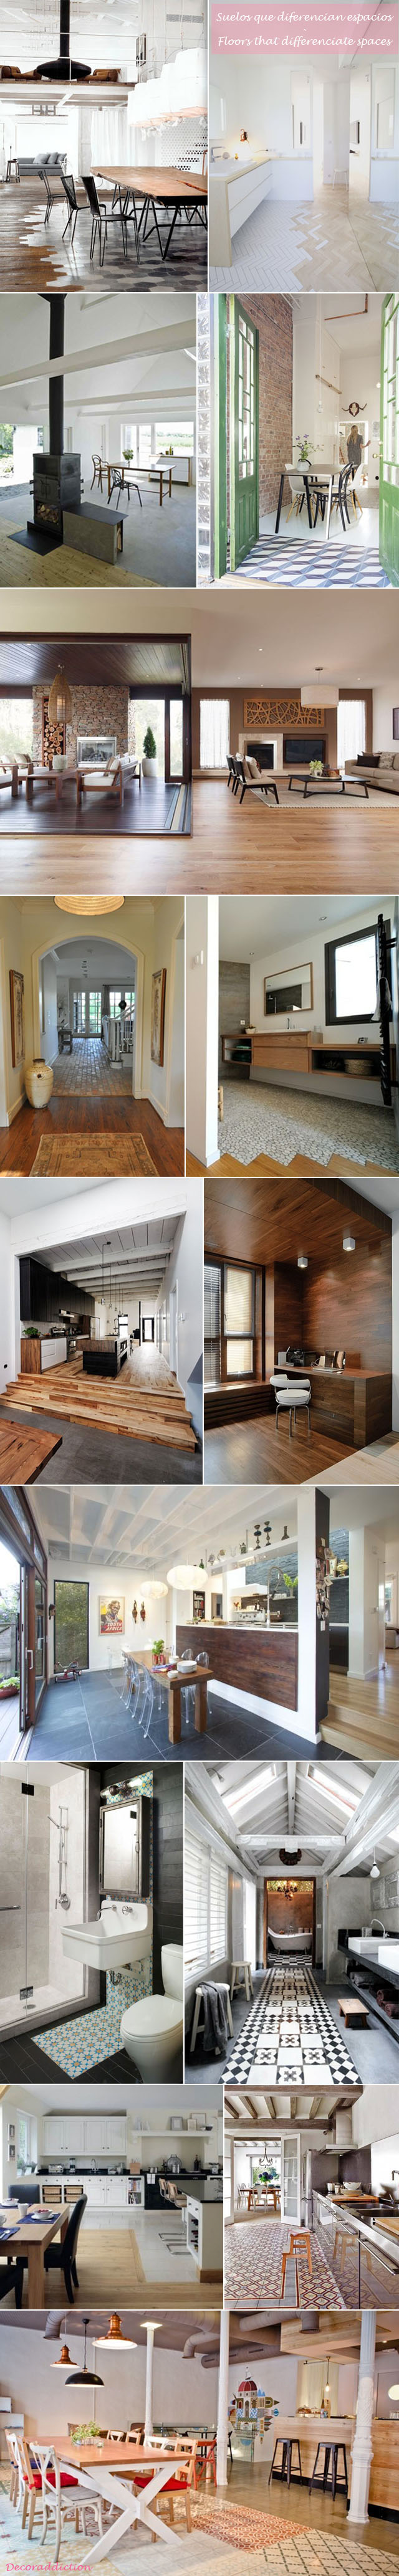 Suelos que diferencian espacios - Floors that differenciate spaces_00